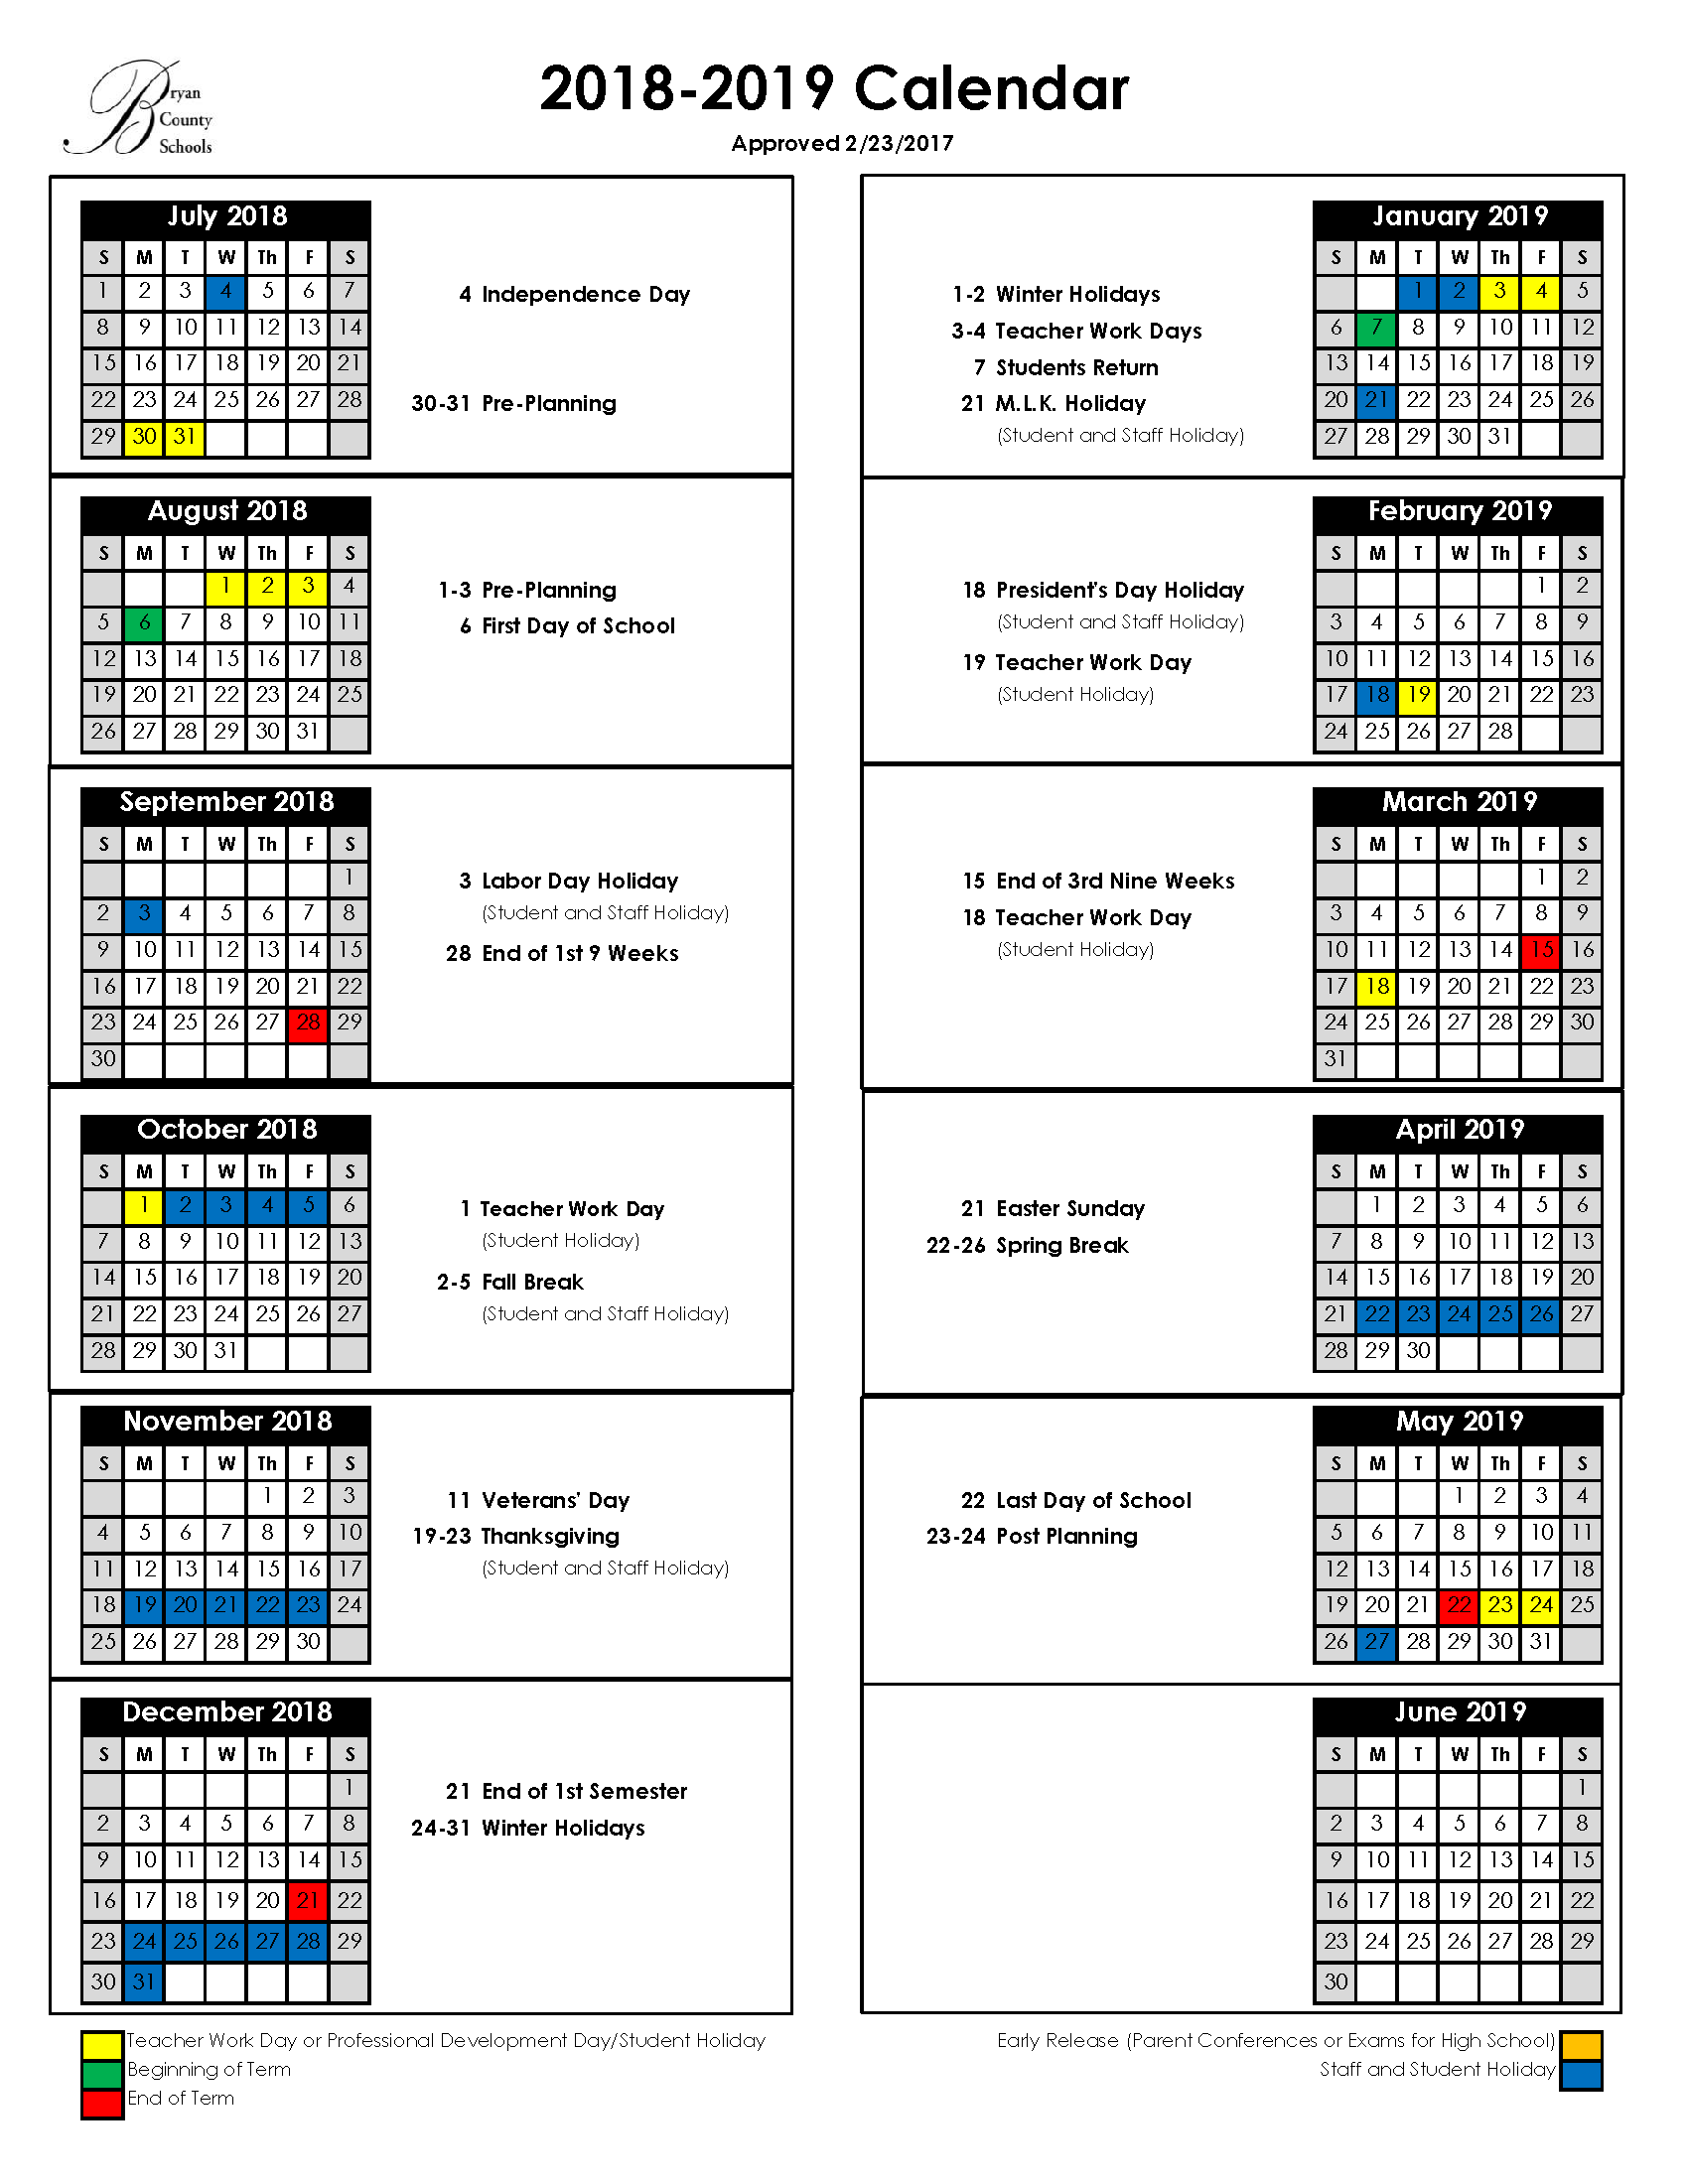 Academic Year Calendar 2019 20 With Bryan County Schools